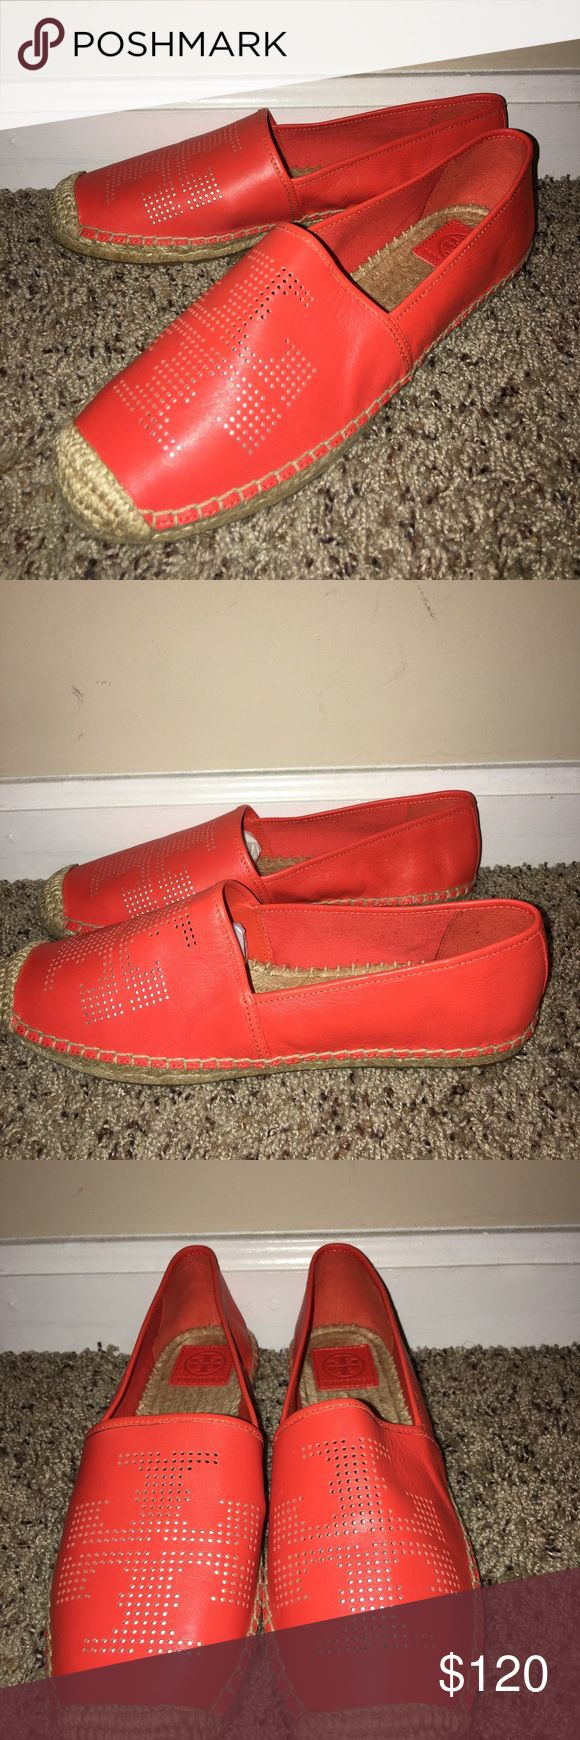 Tory Burch Espadrilles Size 11